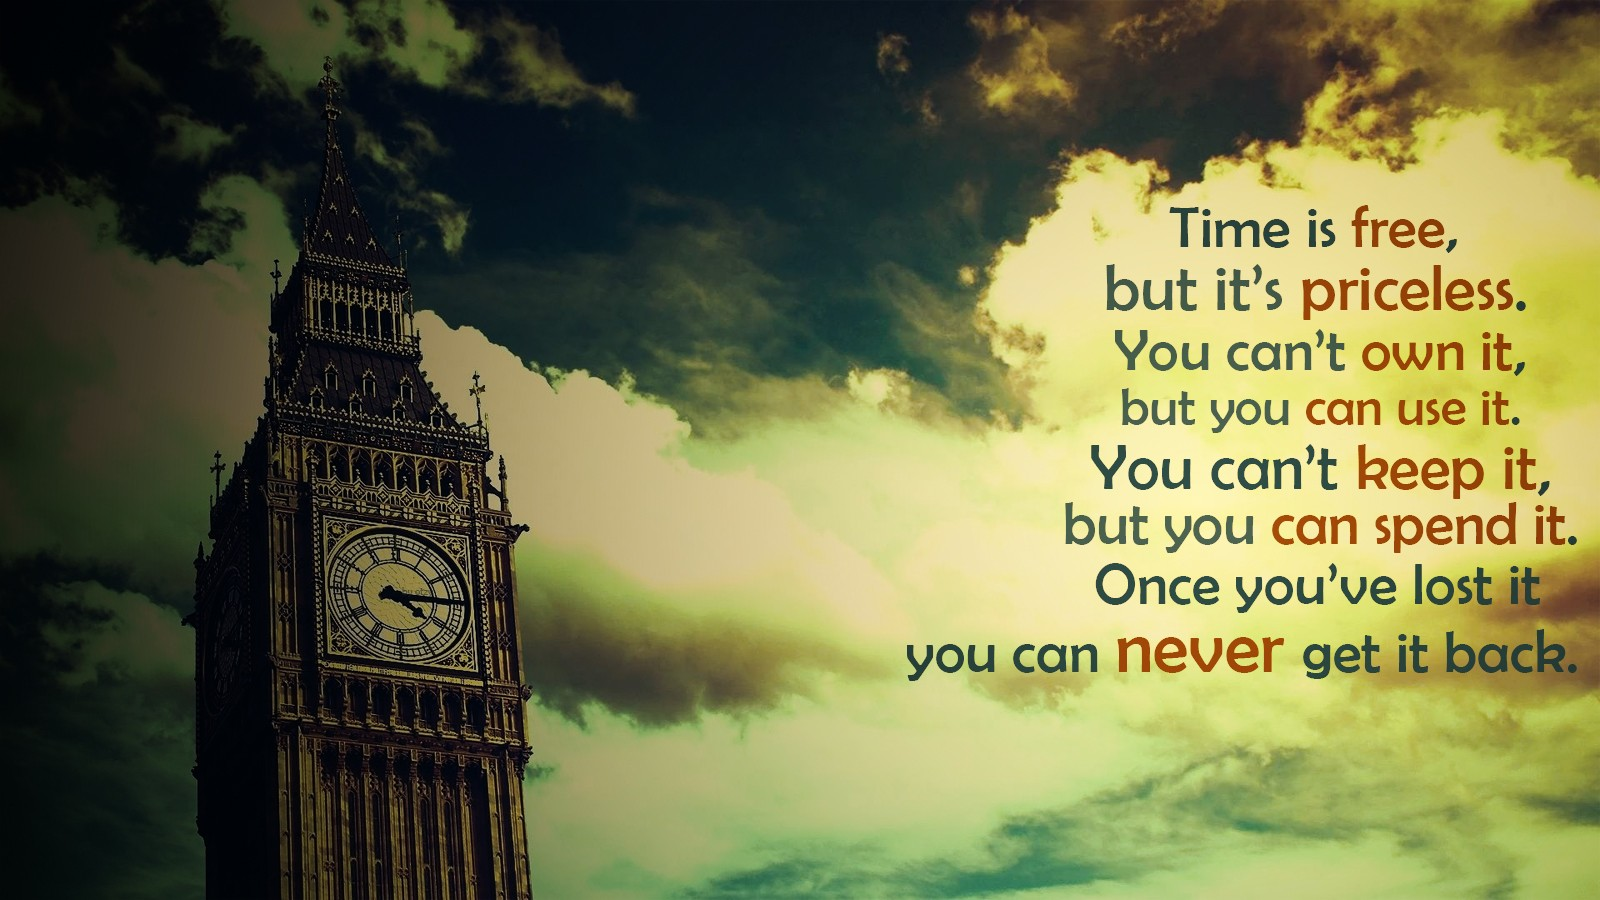 Cosmos Quotes Wallpaper Quote Big Ben London Time Filter Clouds